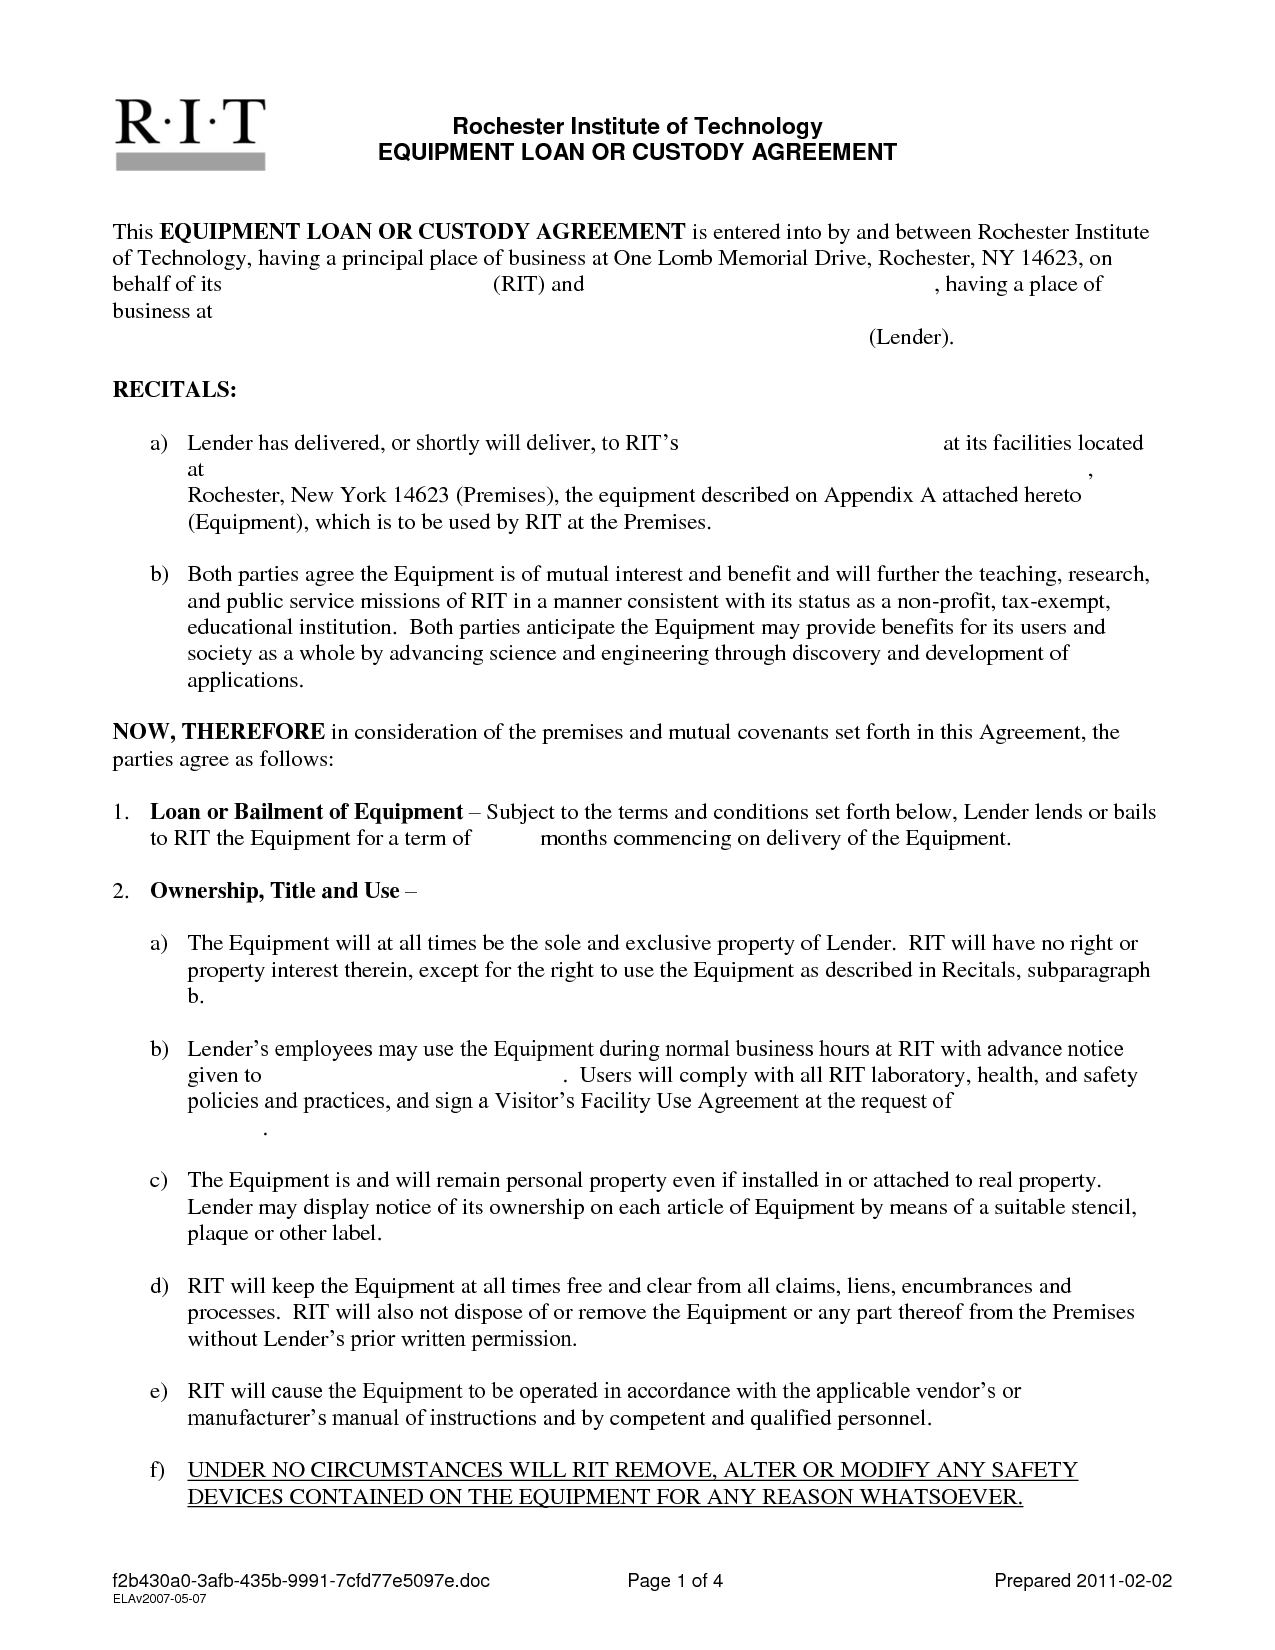 Free Loan Agreement Template Loan Contract Template 26 Examples In Word Pdf  Free, 5 Loan Agreement Templates To Write Perfect Agreements, Loan Agreement  ...  Agreement Contract Sample Between Two Parties